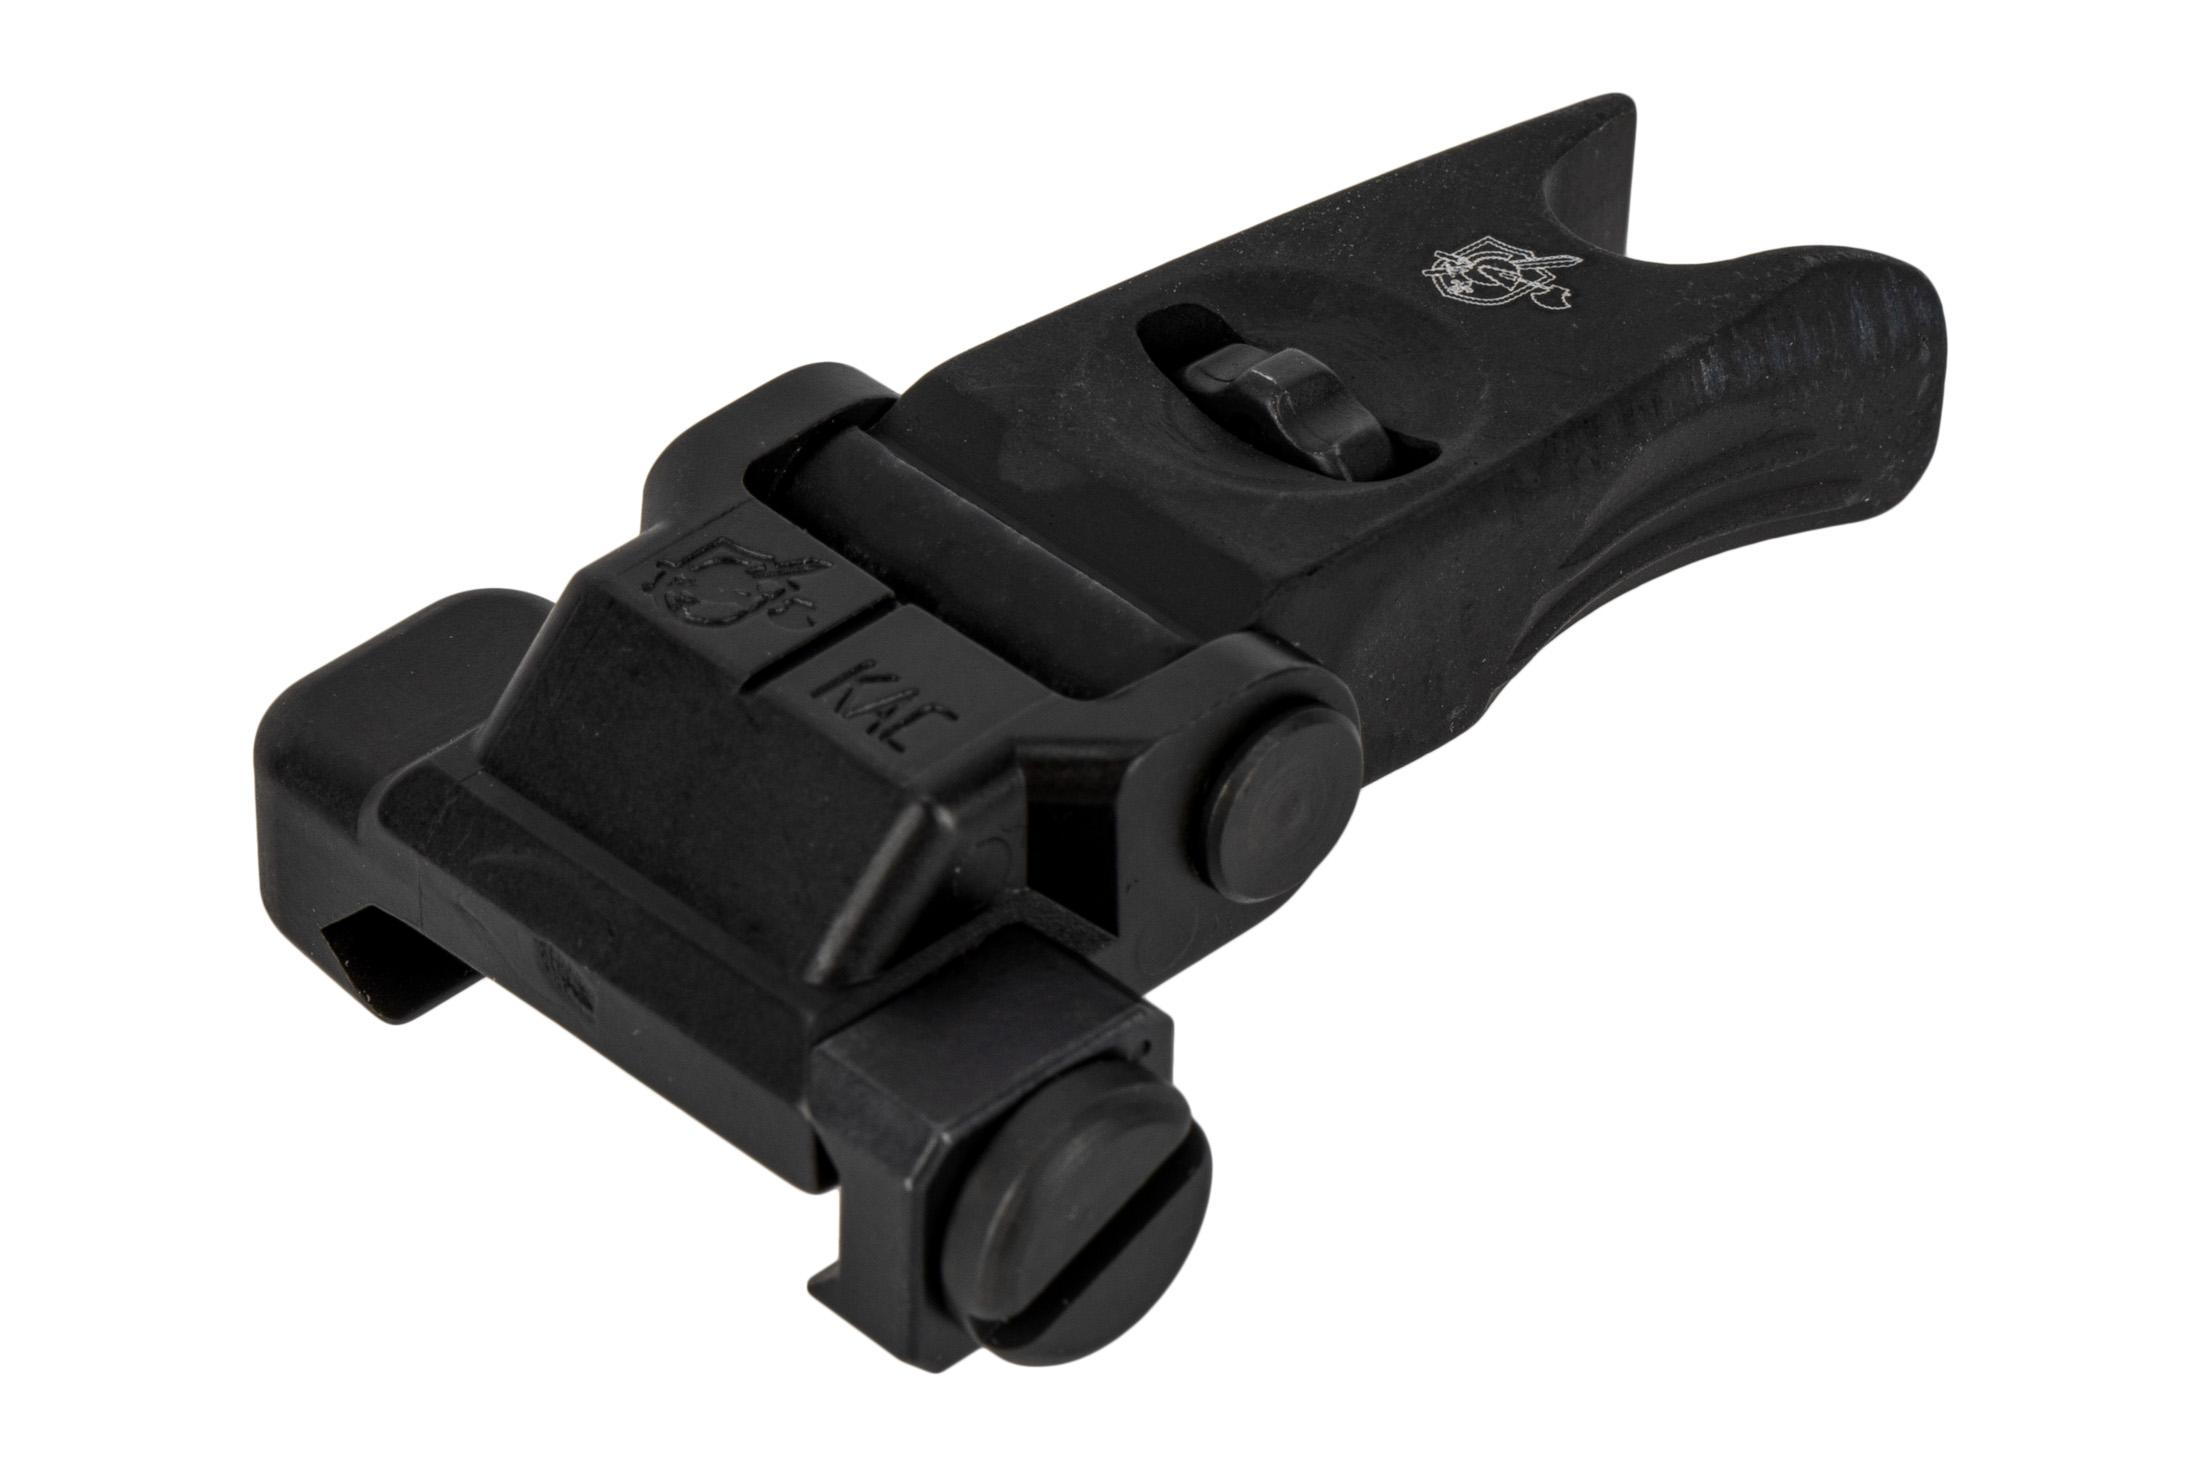 Knights Armament Company folding front sight features a low profile design